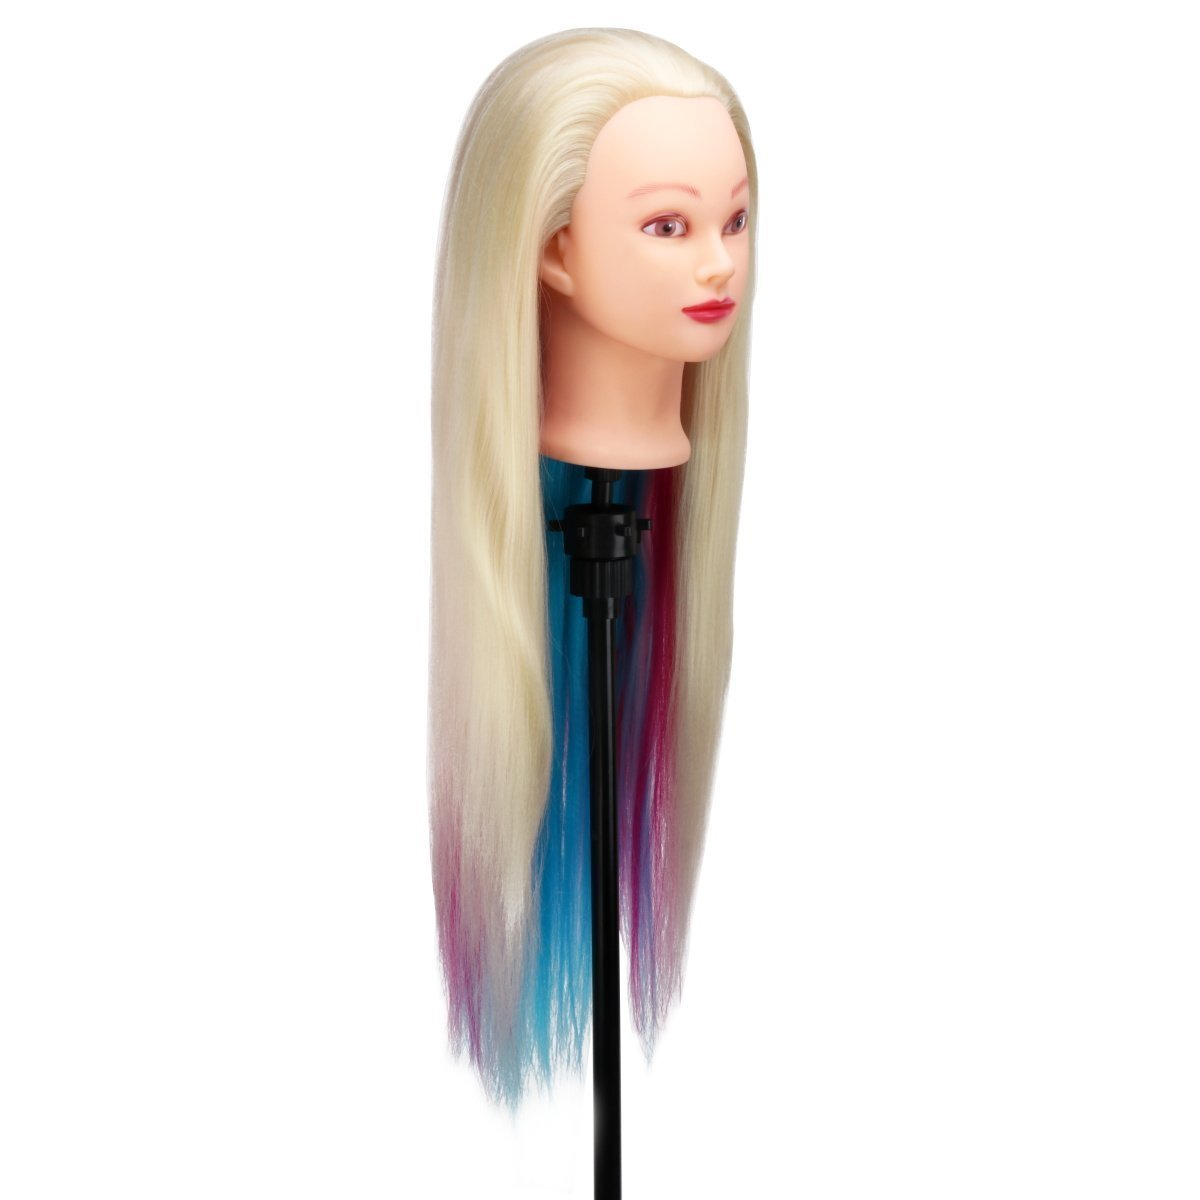 MYSWEETY 29 Inch Colorful Hair Mannequin Head Hairdressing Practice Training Doll Heads Cosmetology Hair Styling Mannequins Heads with Clamp + Practice Tools by MYSWEETY (Image #4)